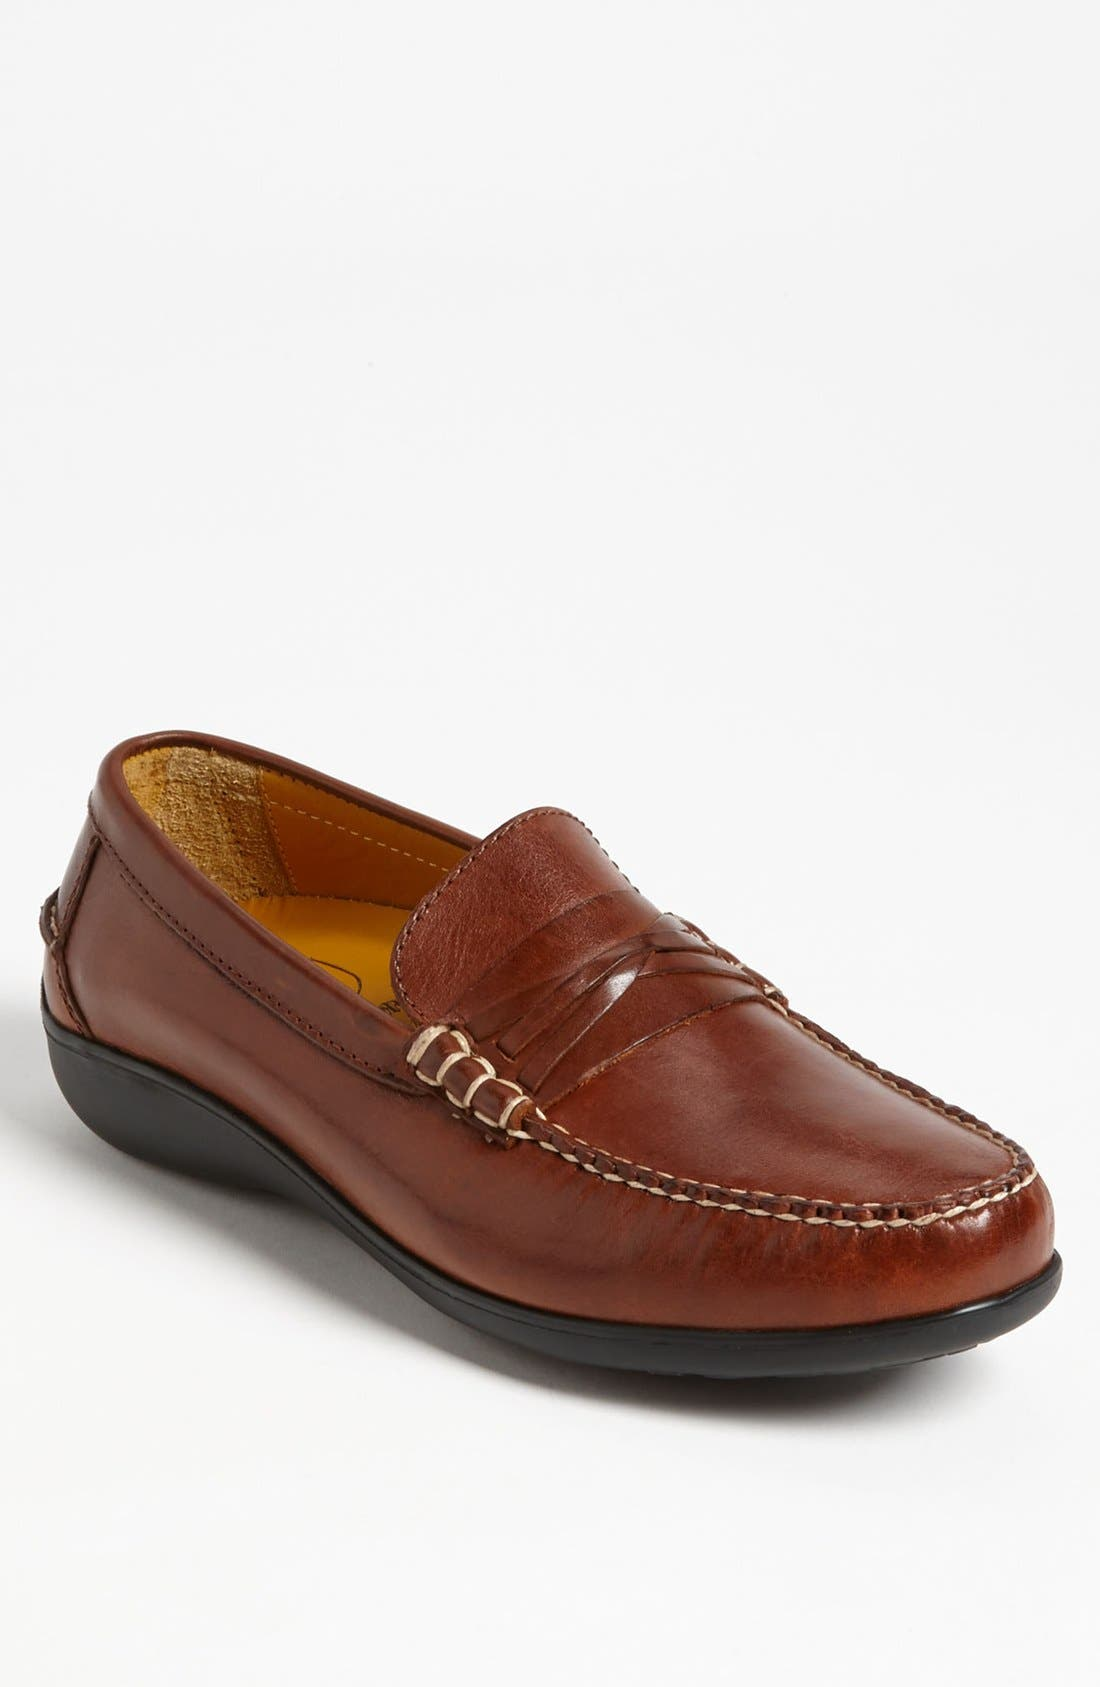 'Truman' Loafer,                             Main thumbnail 1, color,                             CHESTNUT